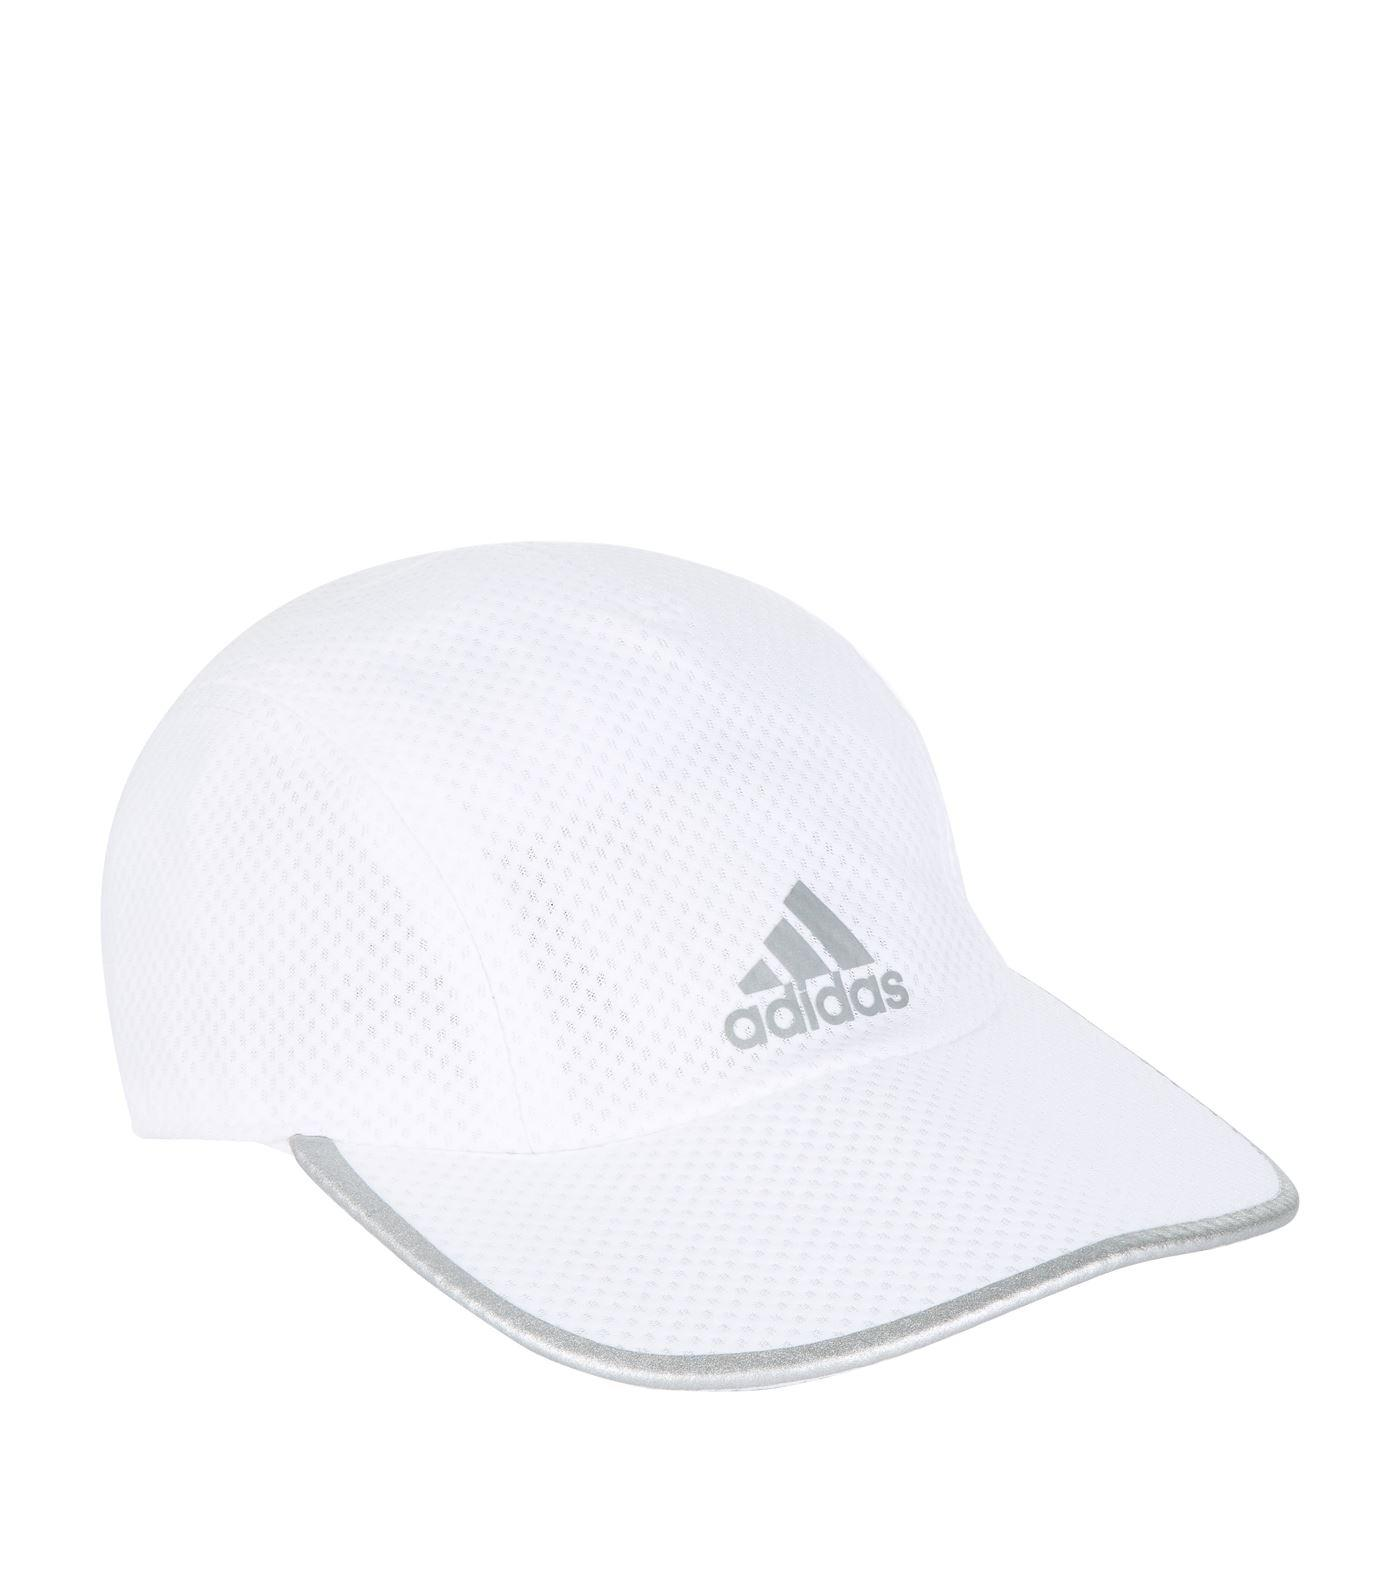 new styles e2876 5de22 Adidas White Climacool Running Cap for men